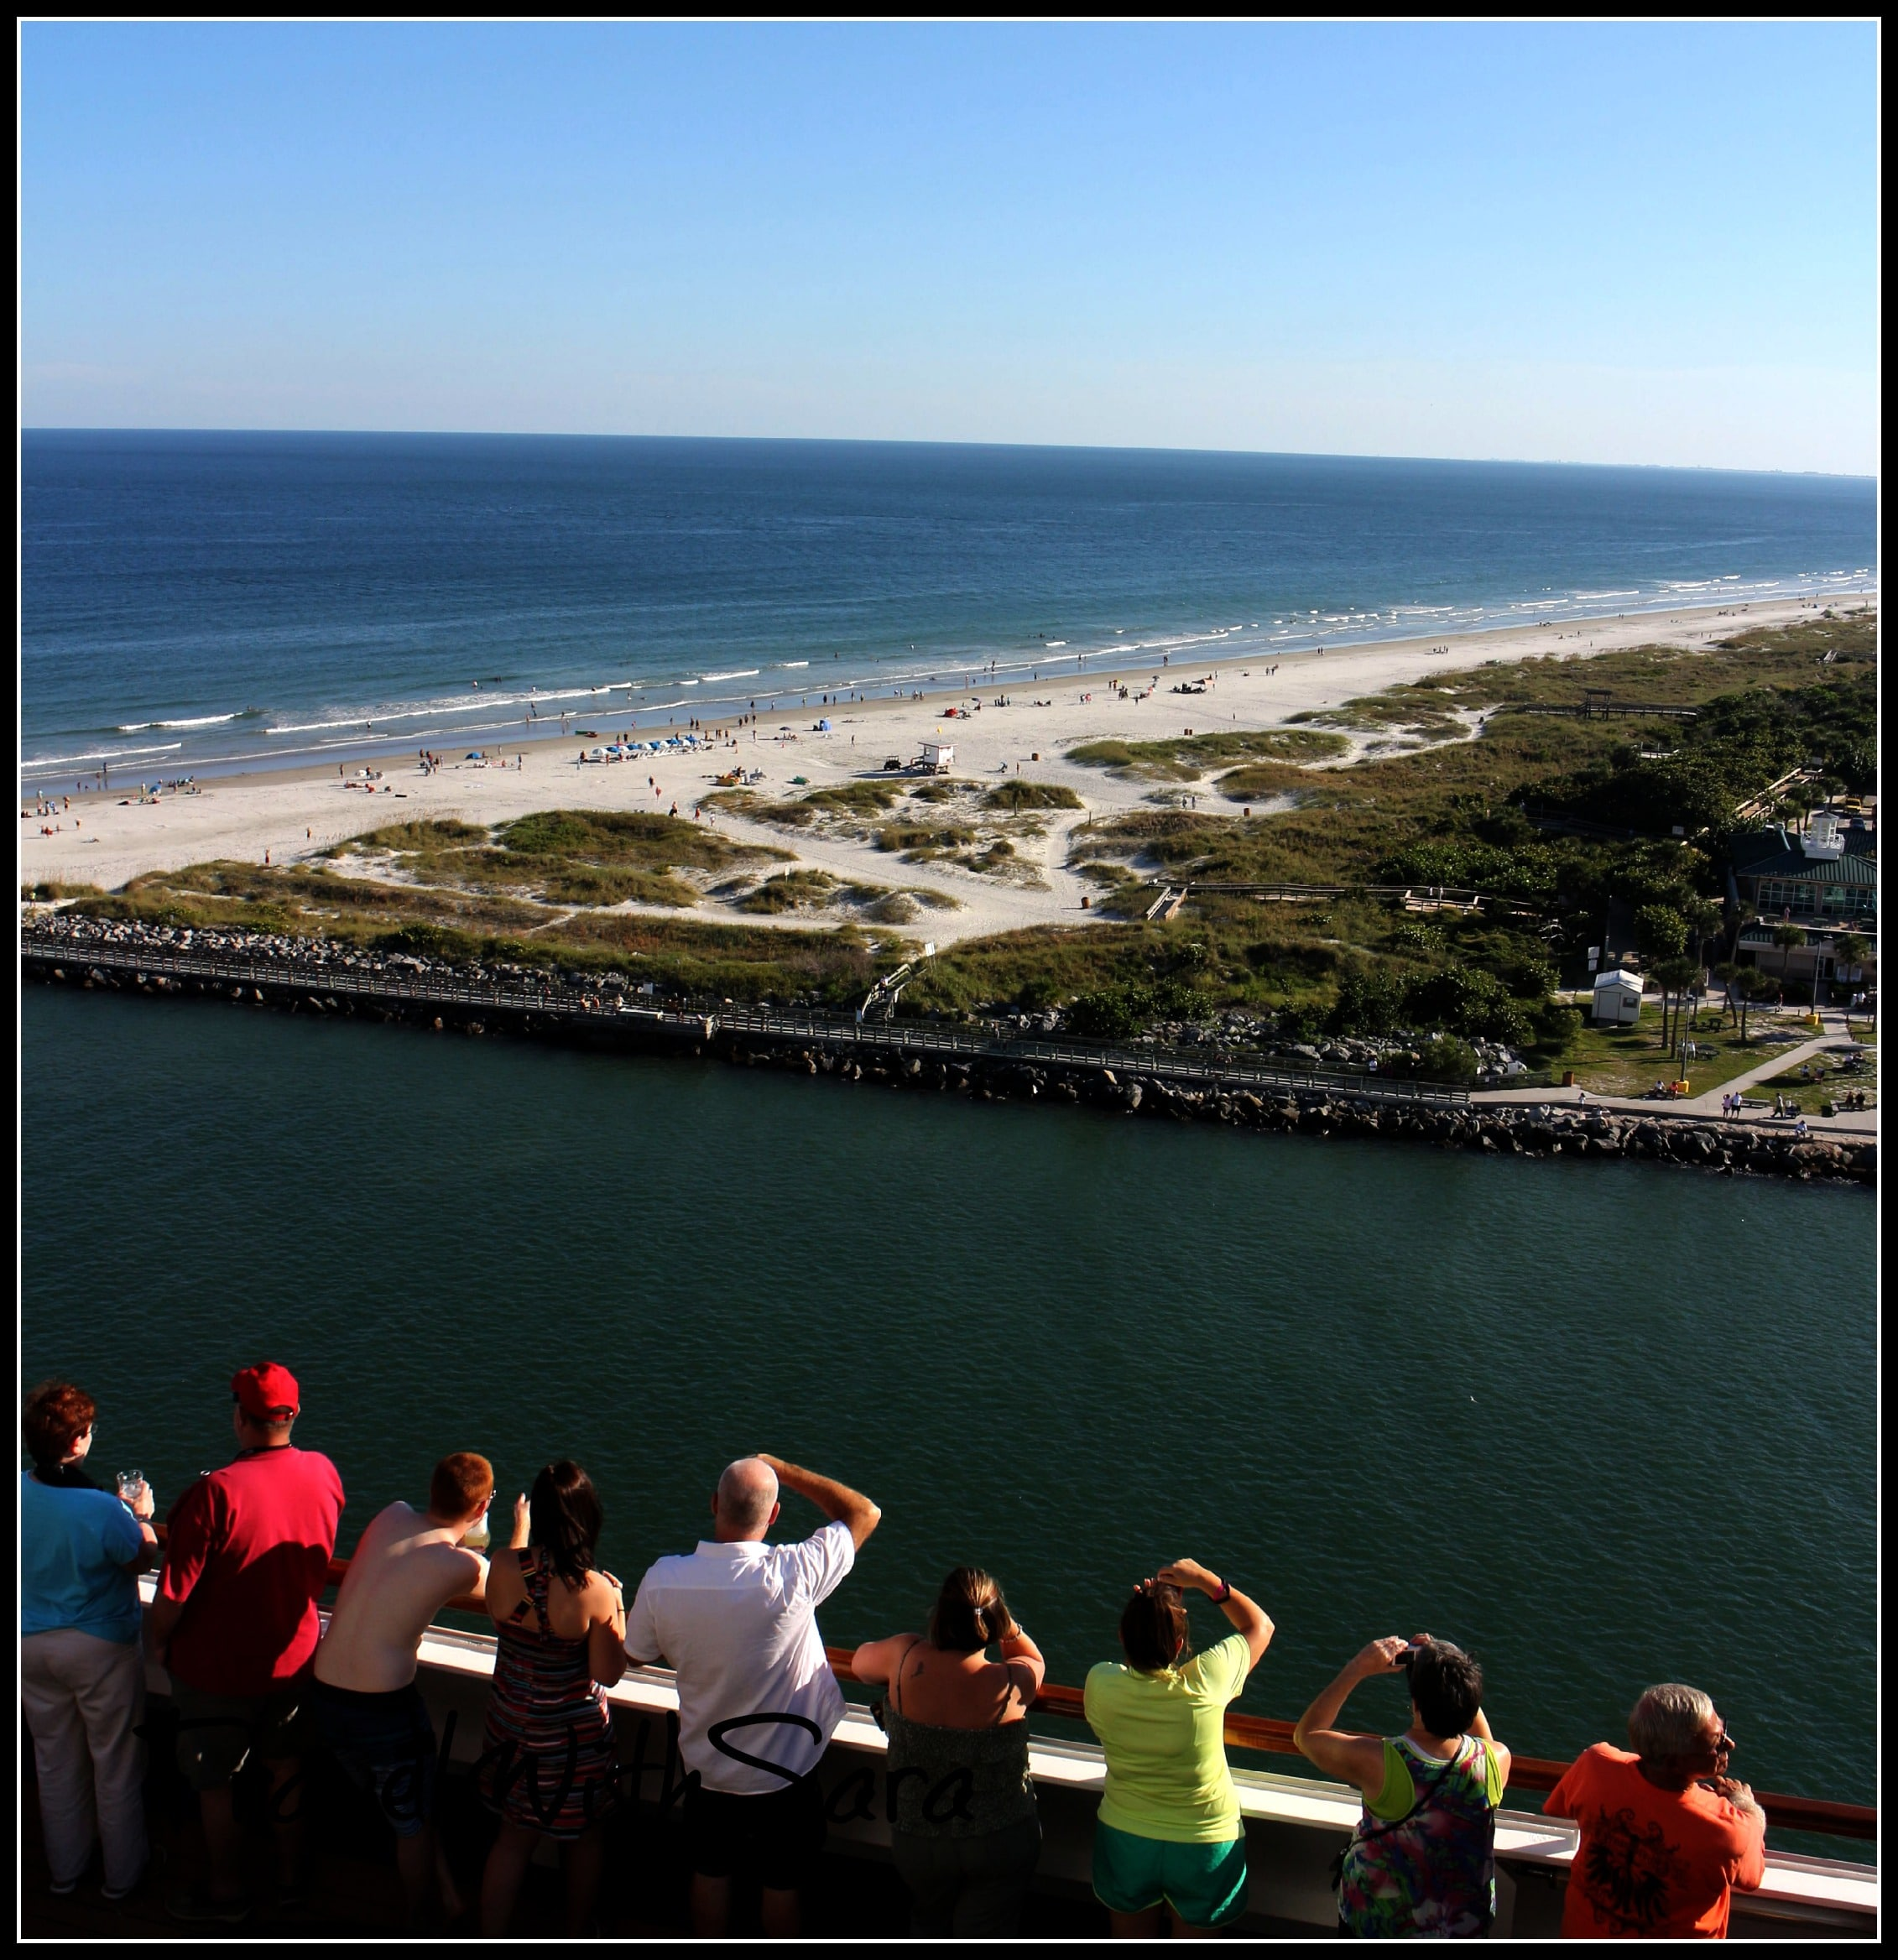 Port Canaveral Florida: Travel Tips For Cruising Out Of Port Canaveral